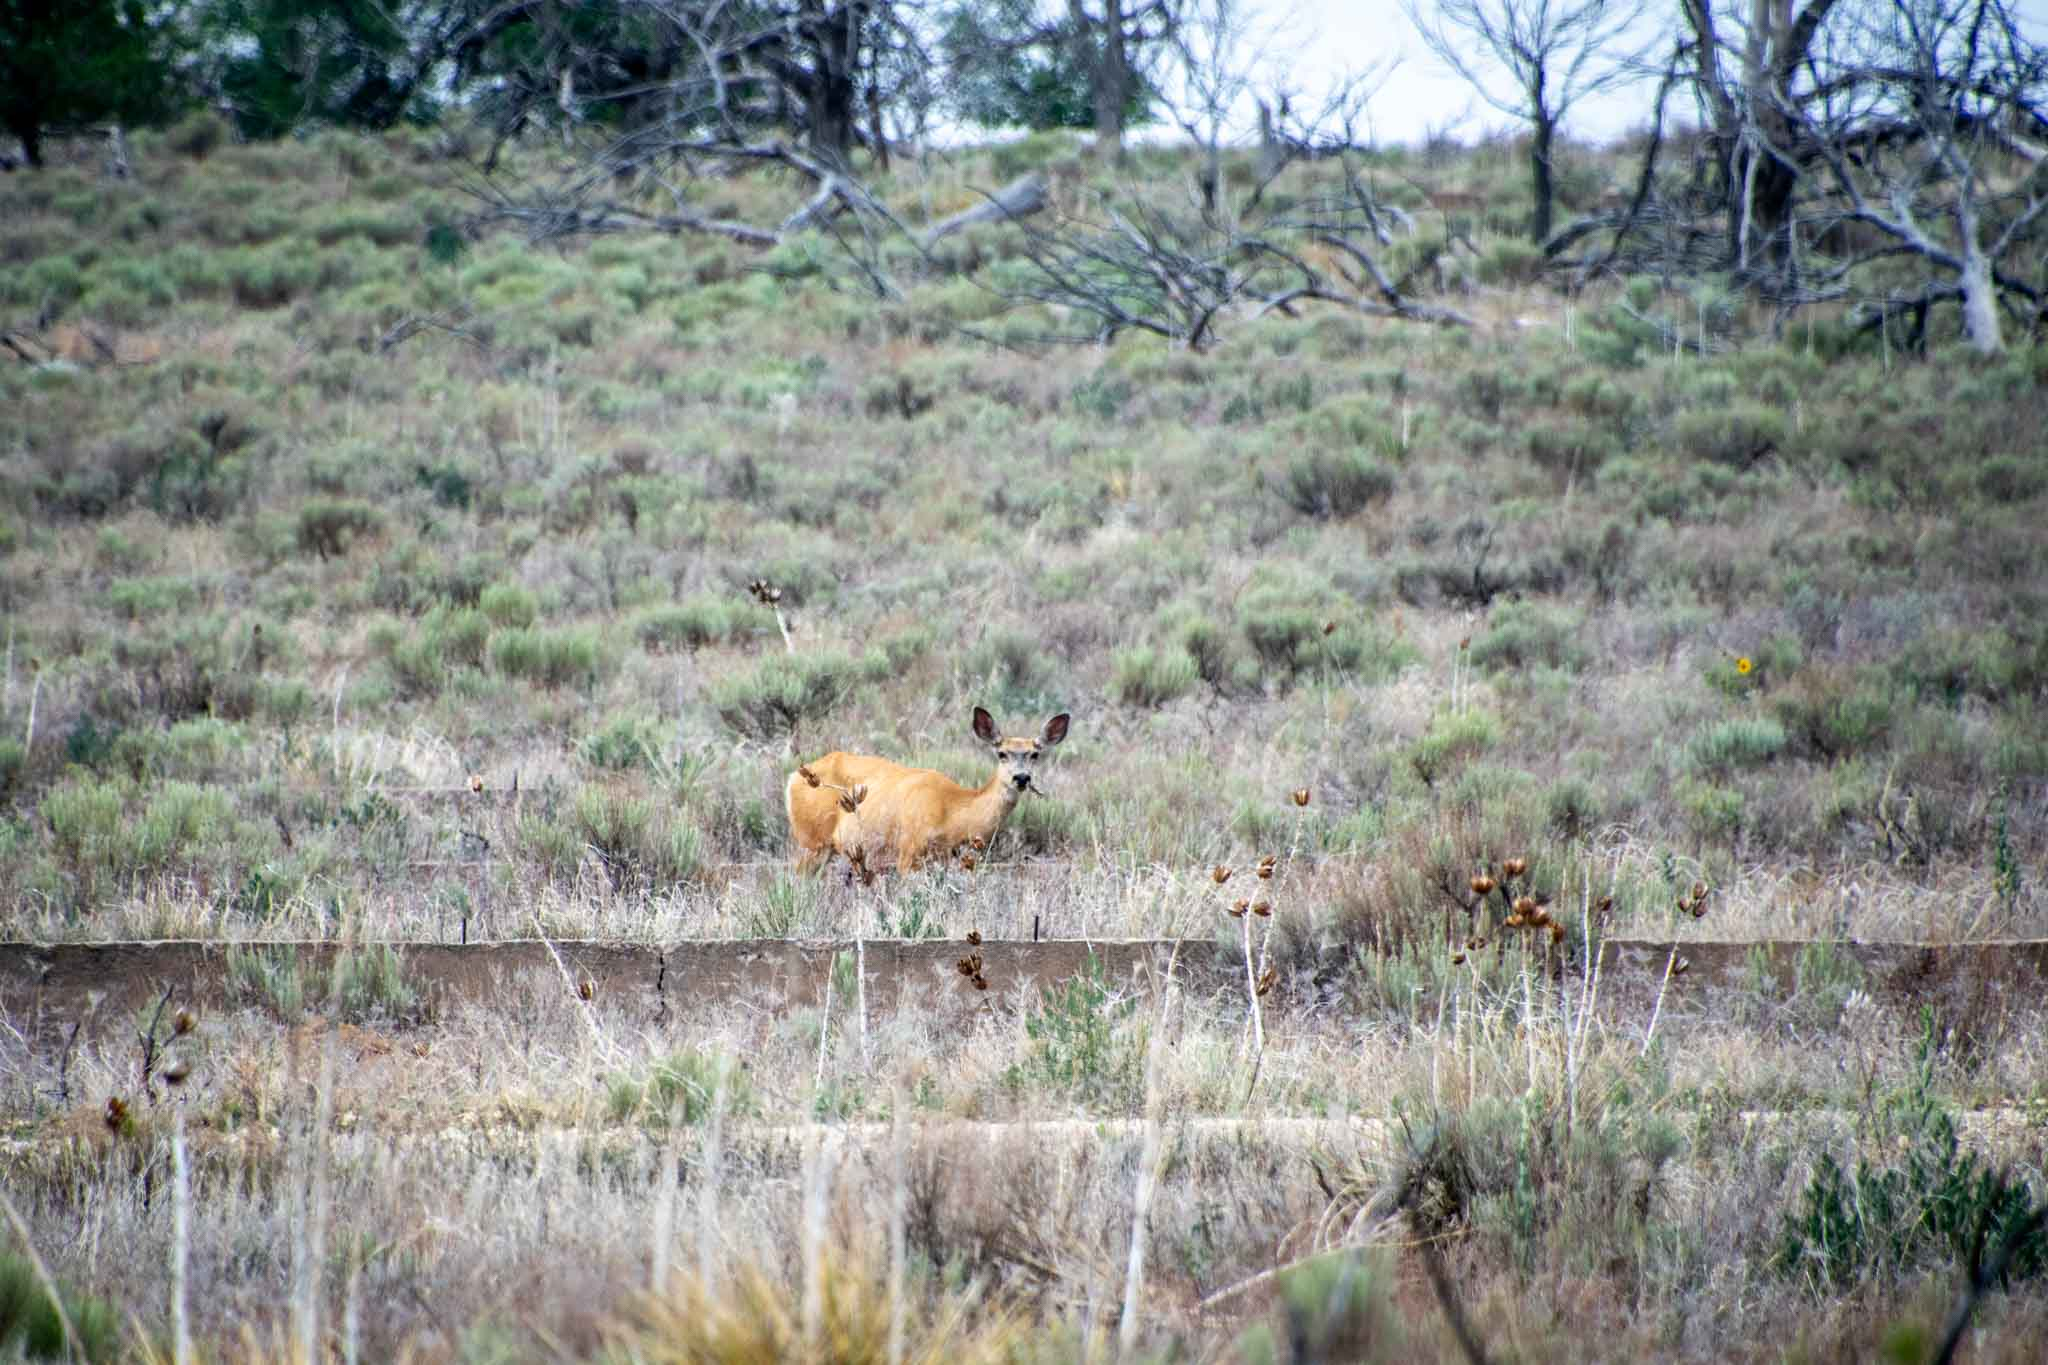 Deer grazing among the building foundations at Camp Amache